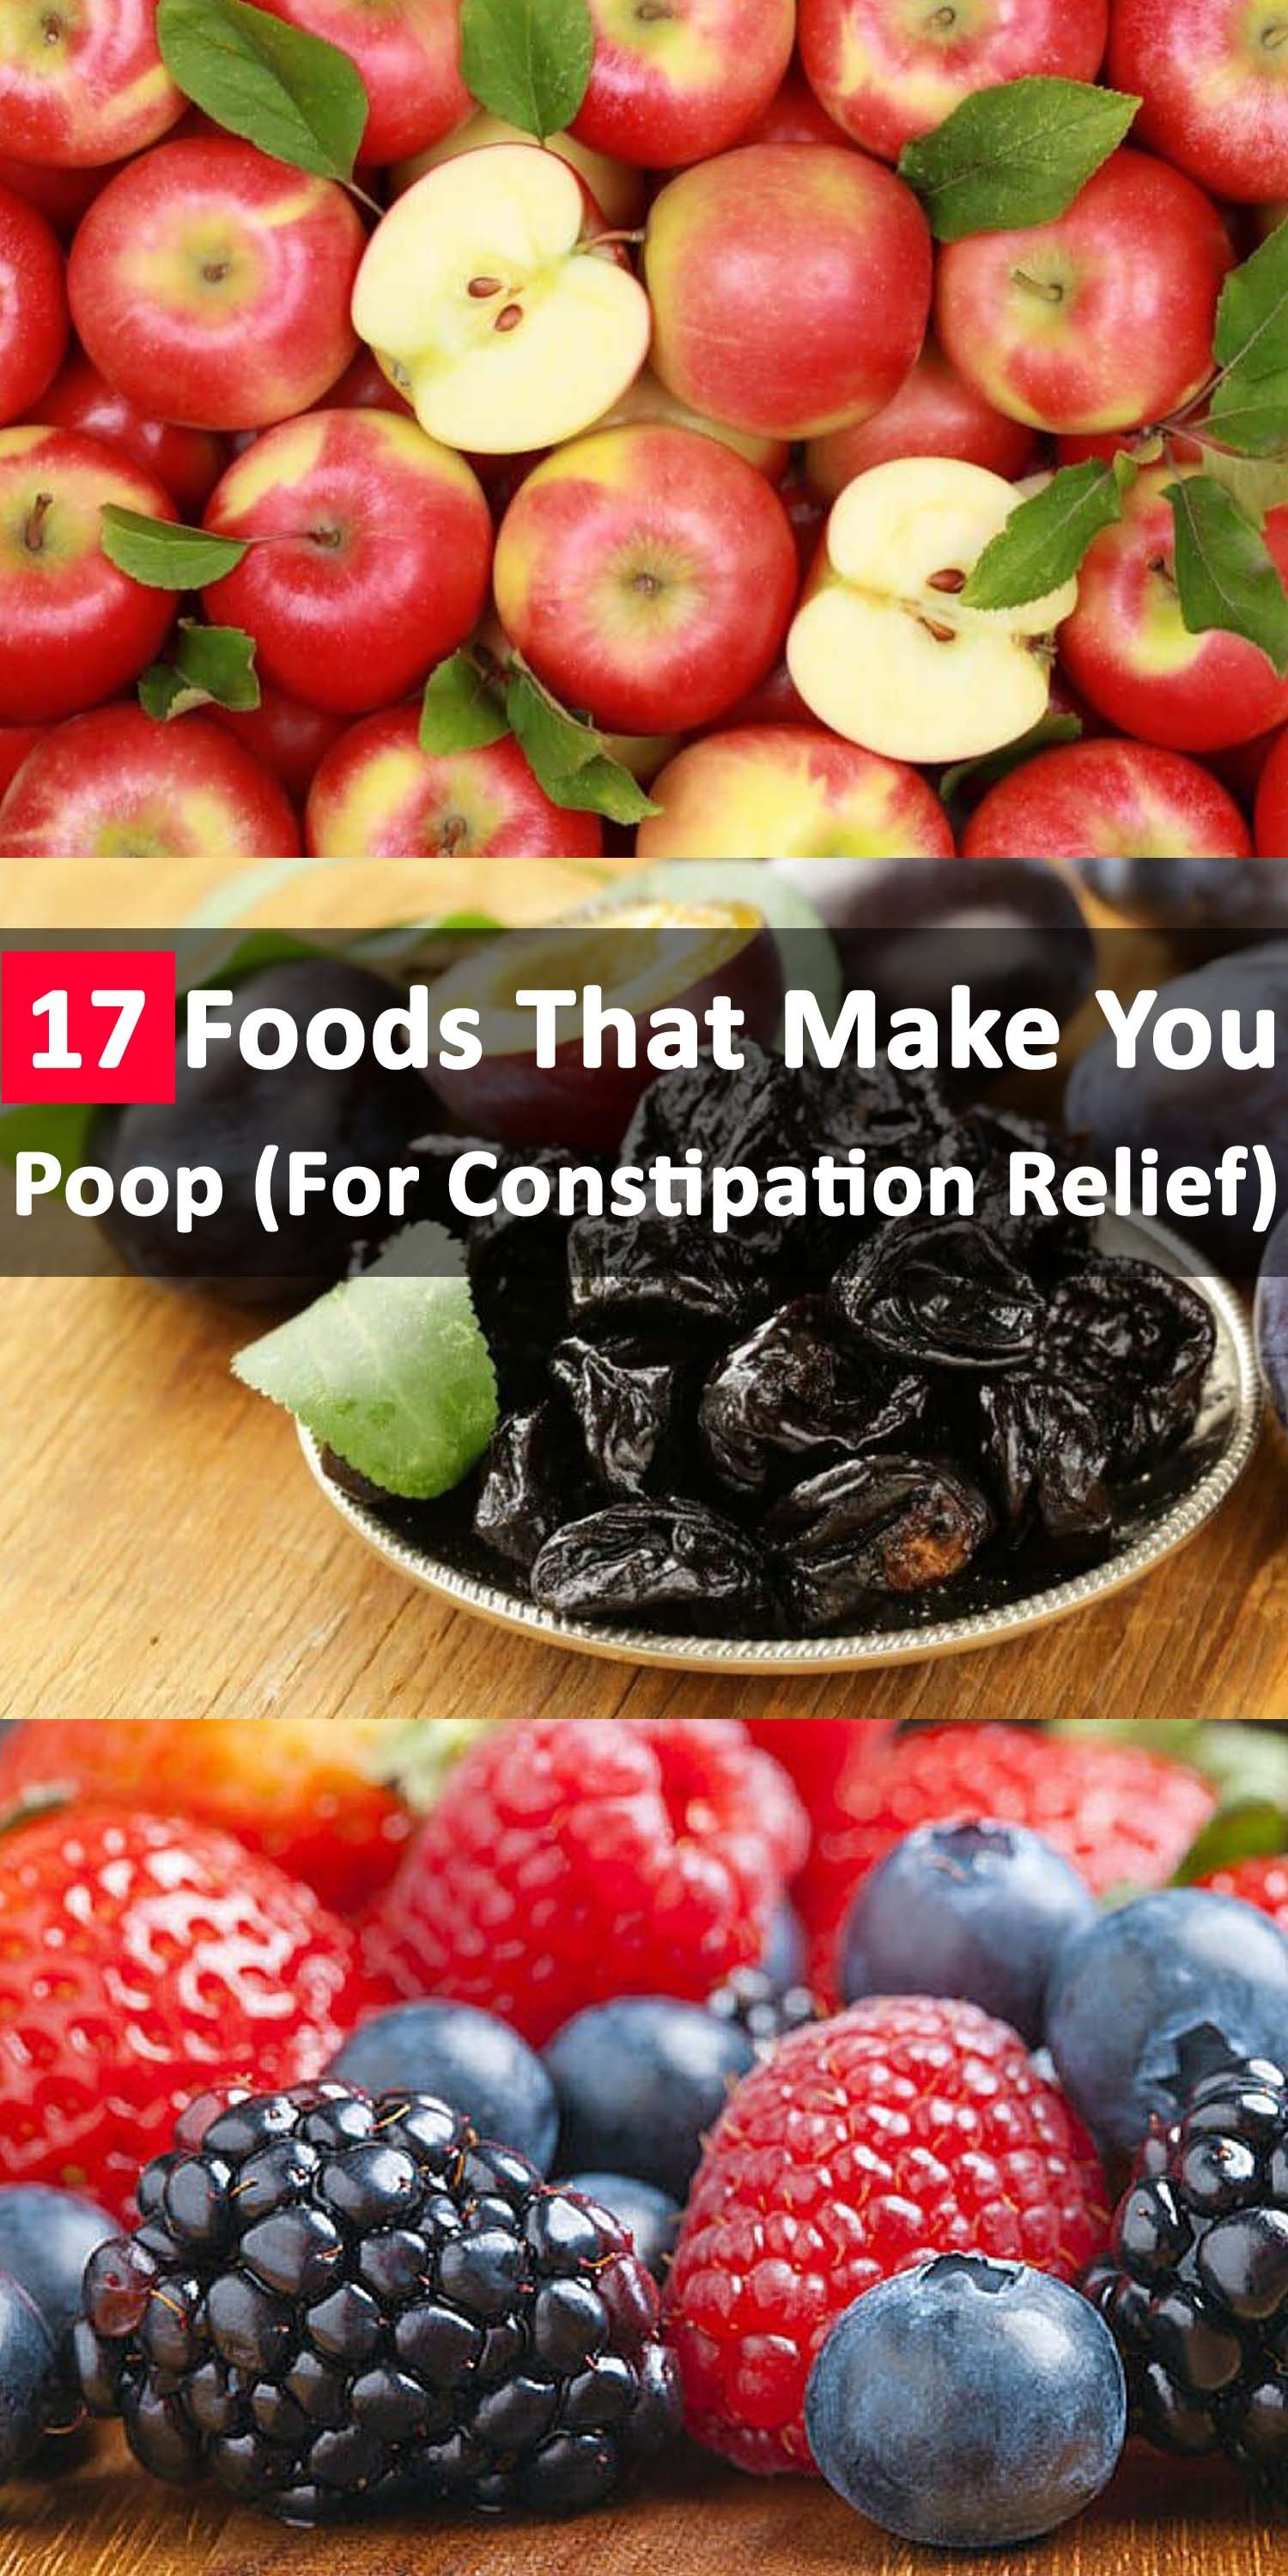 17 foods that make you poop- for constipation relief | healthy